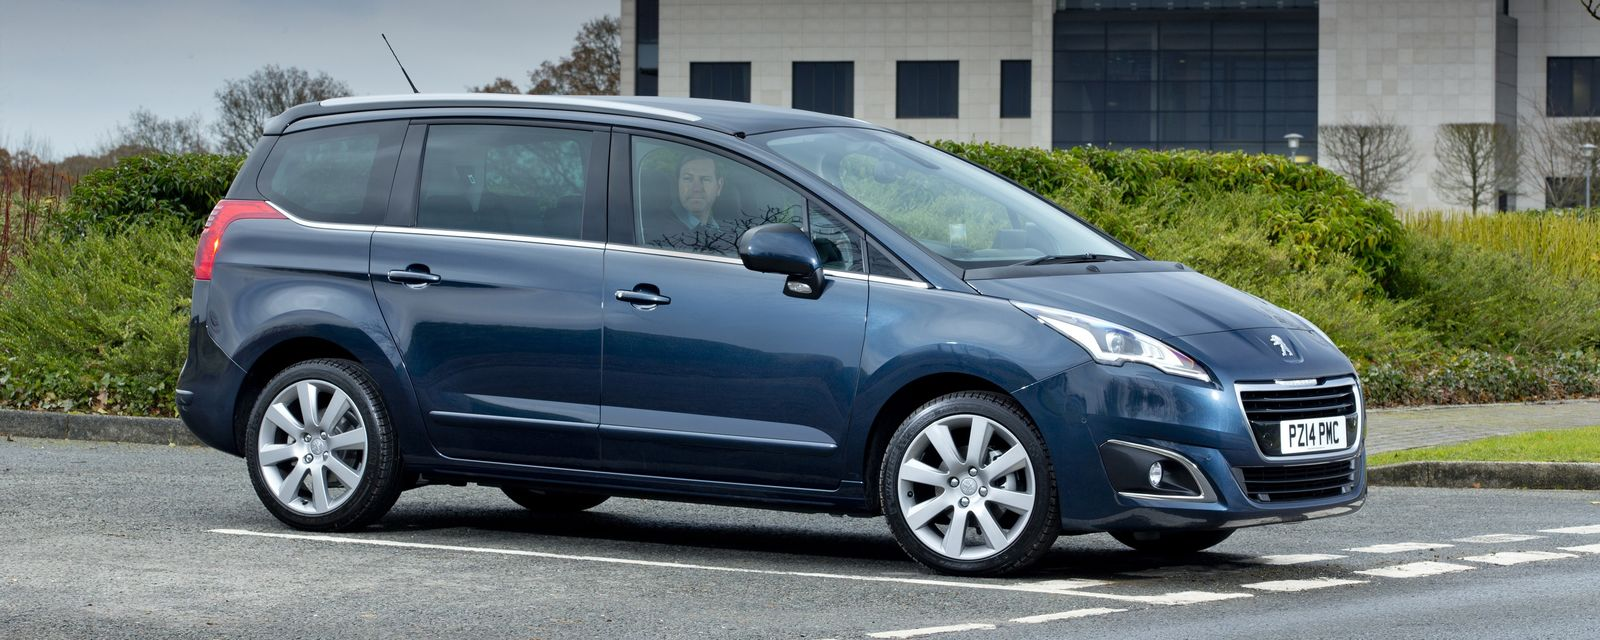 Peugeot 5008 Sizes And Dimensions Guide Carwow